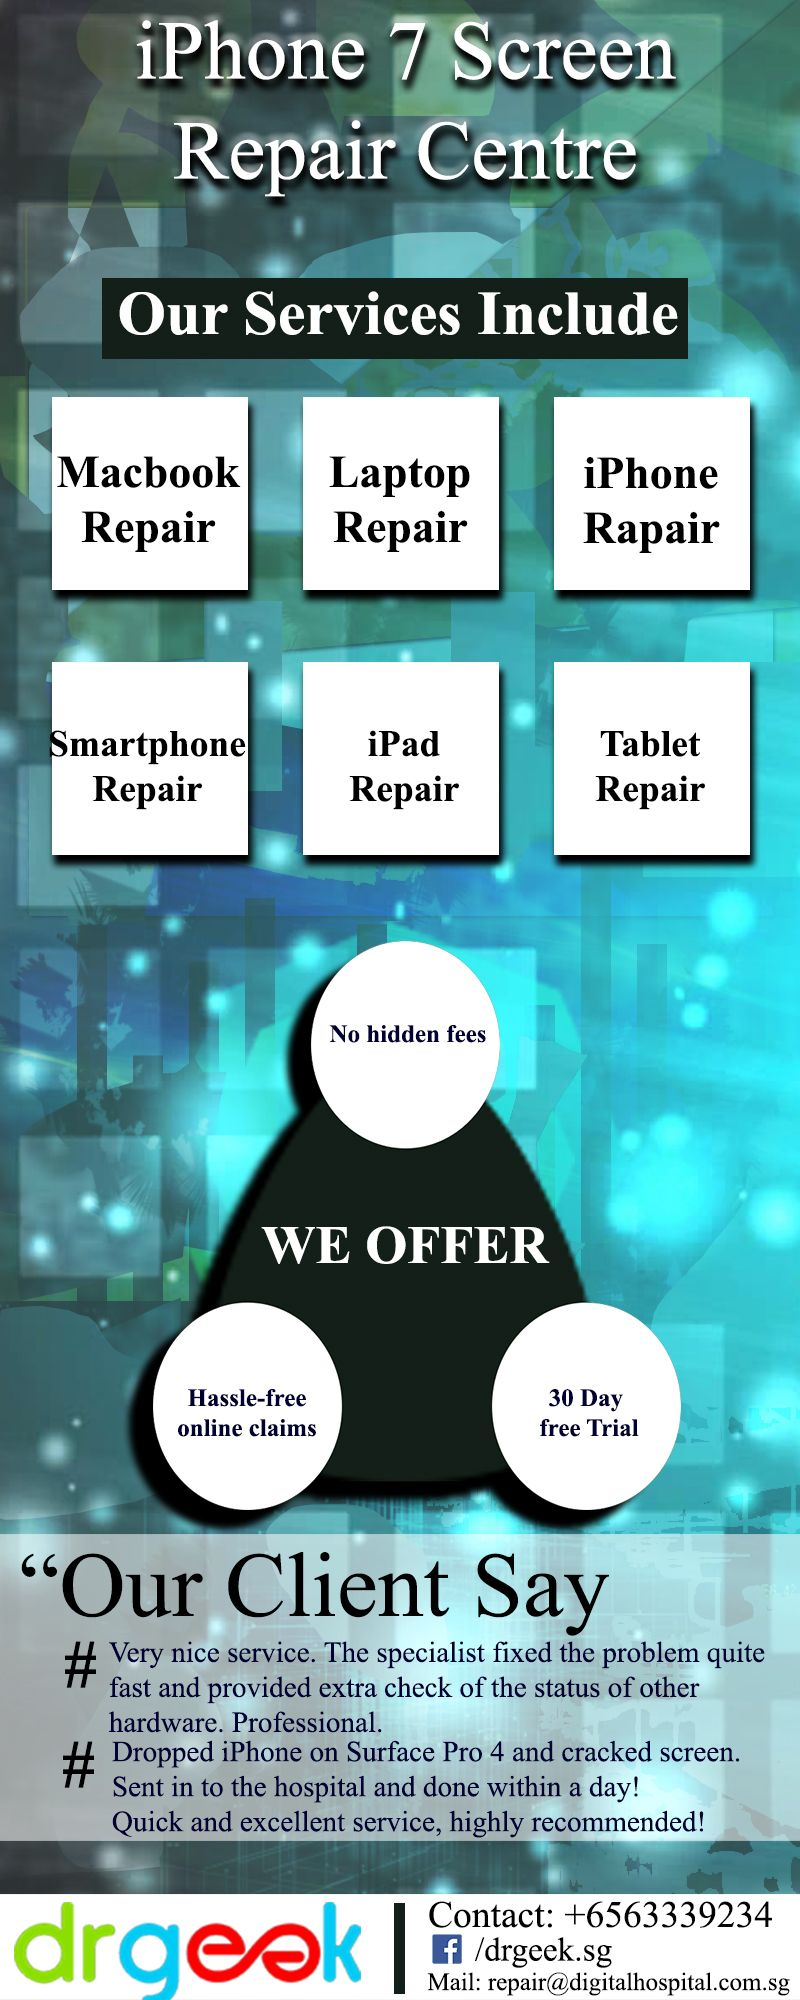 If you are in need of iphone 7 screen repair, contact us